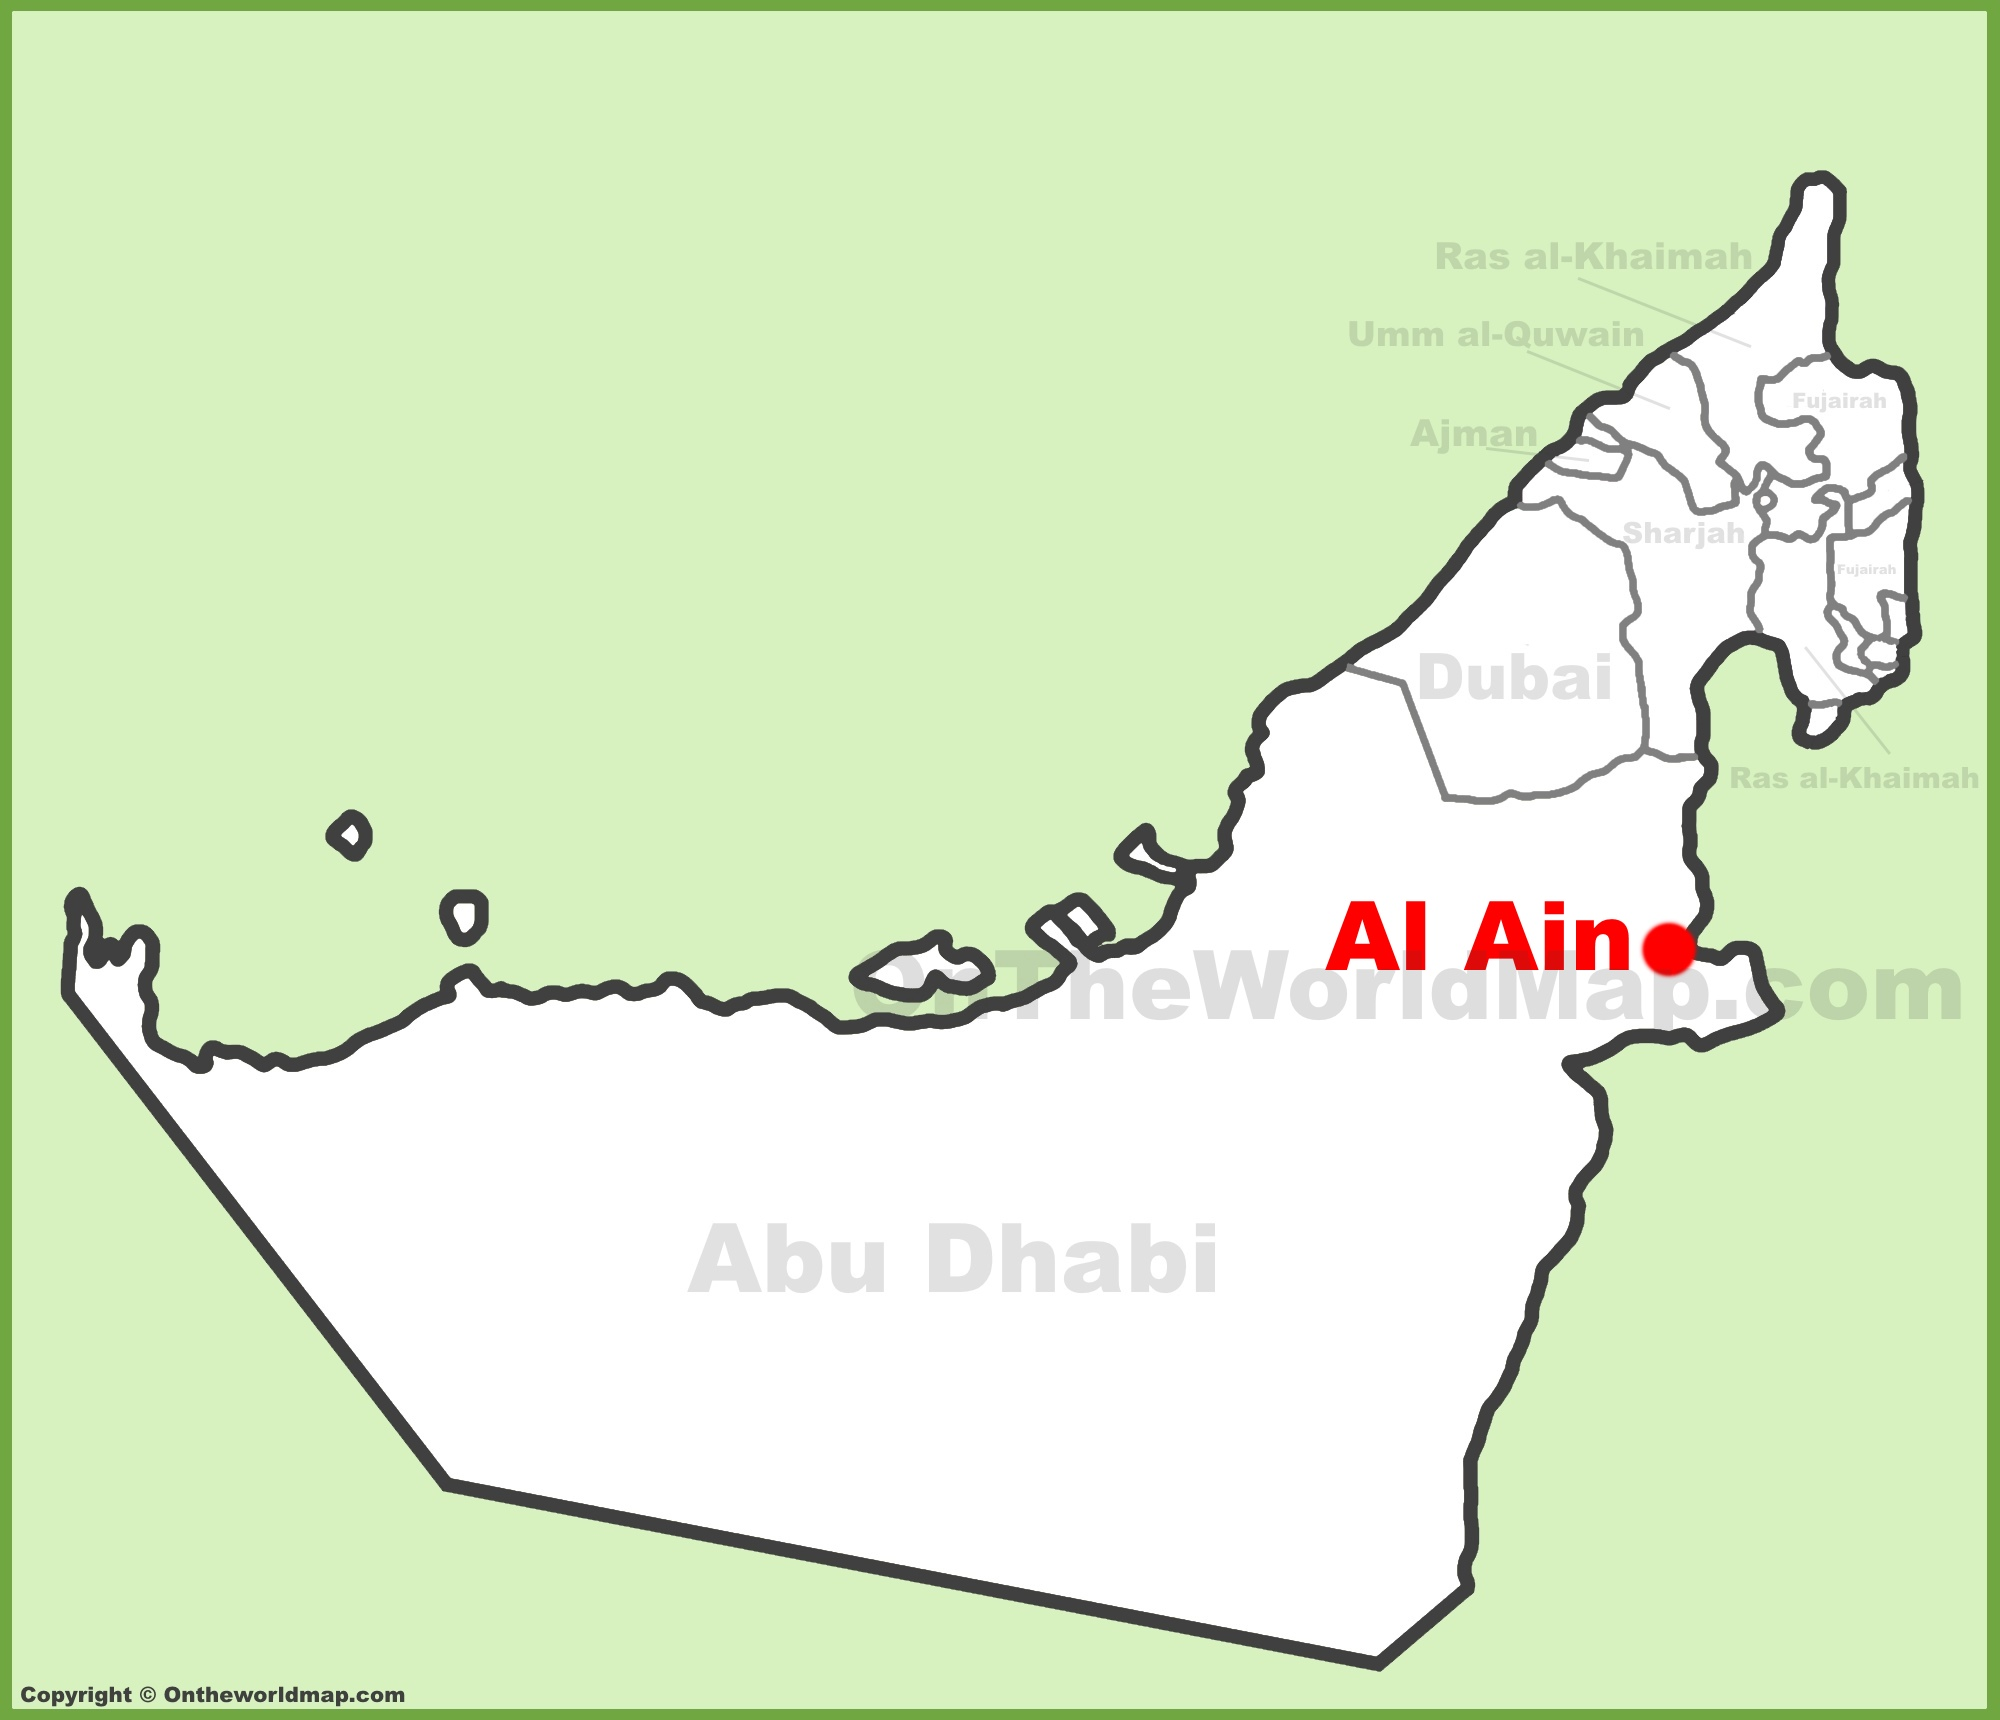 Al Ain location on the UAE United Arab Emirates Map